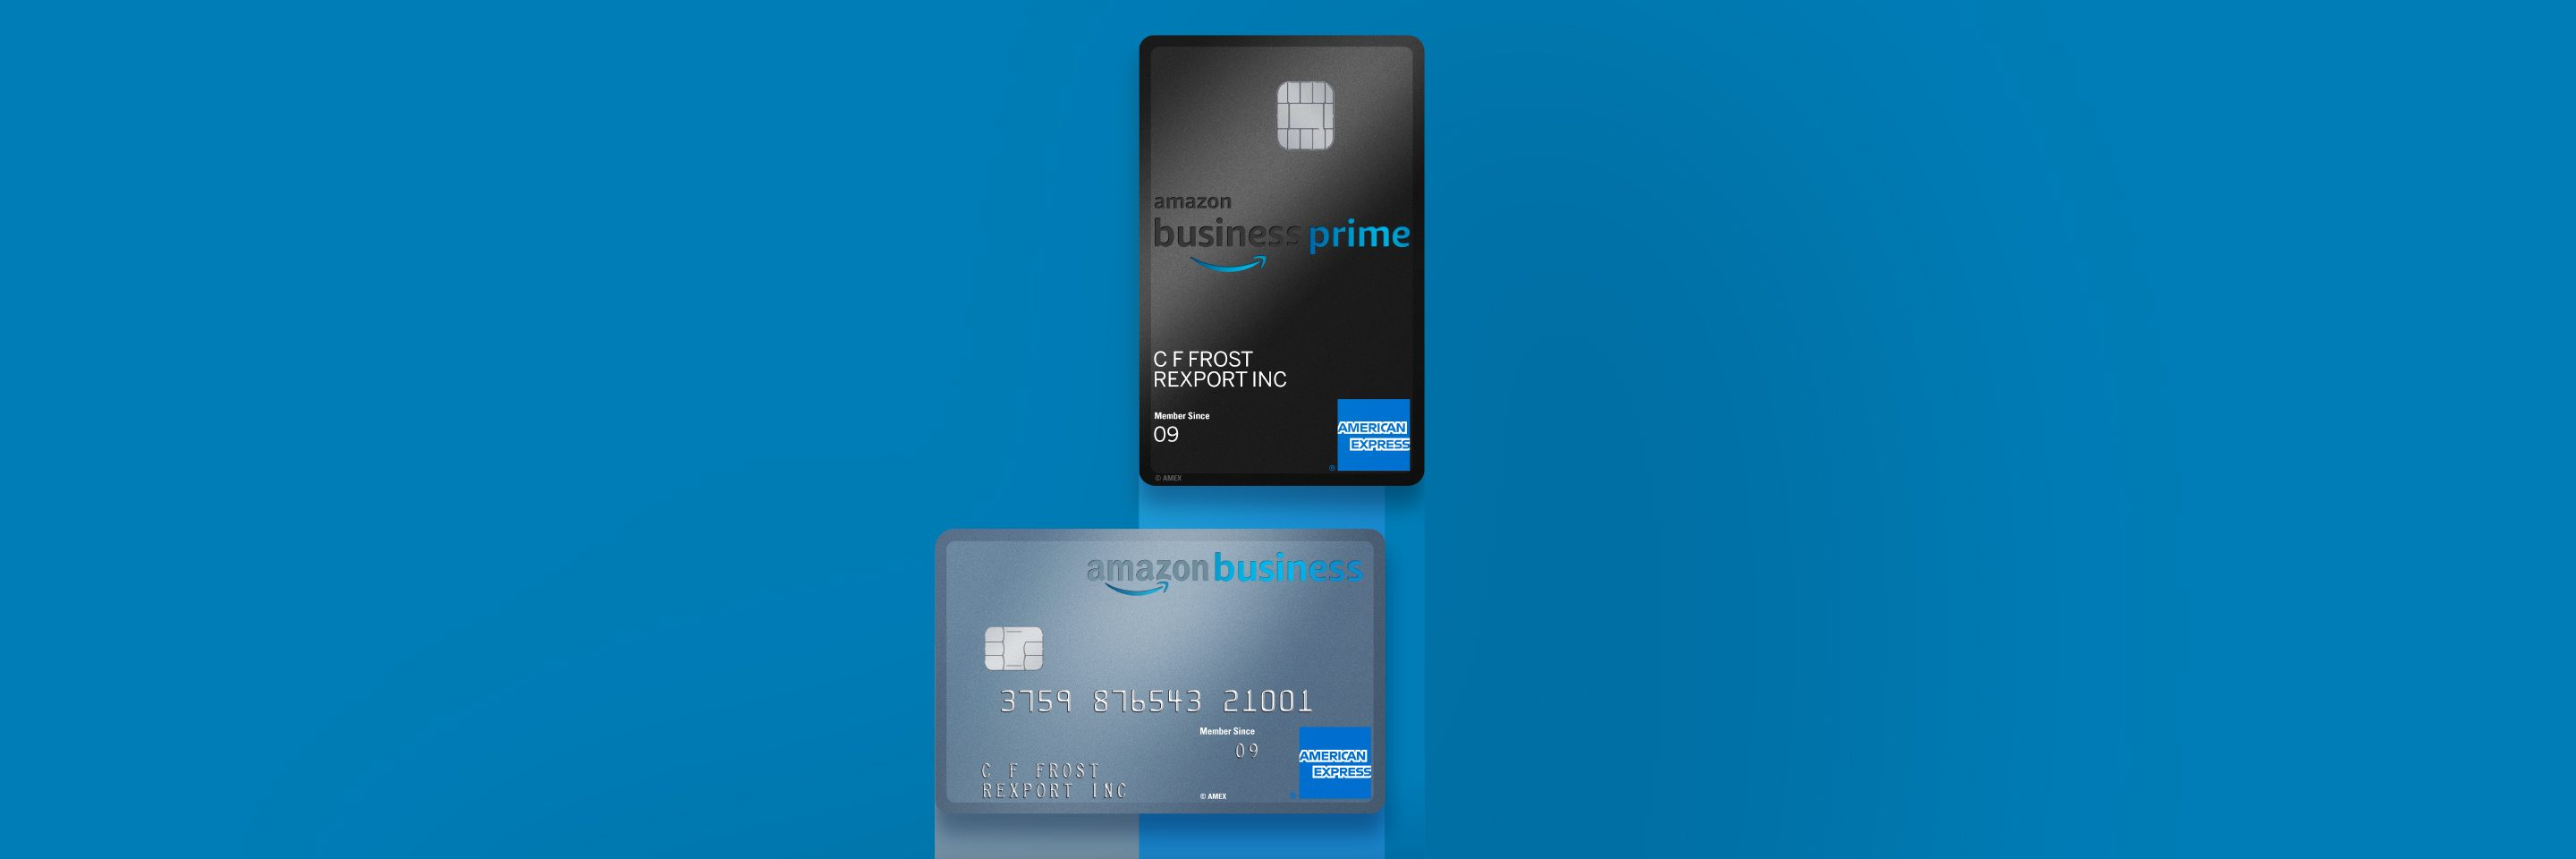 Amazon and American Express Credit Card